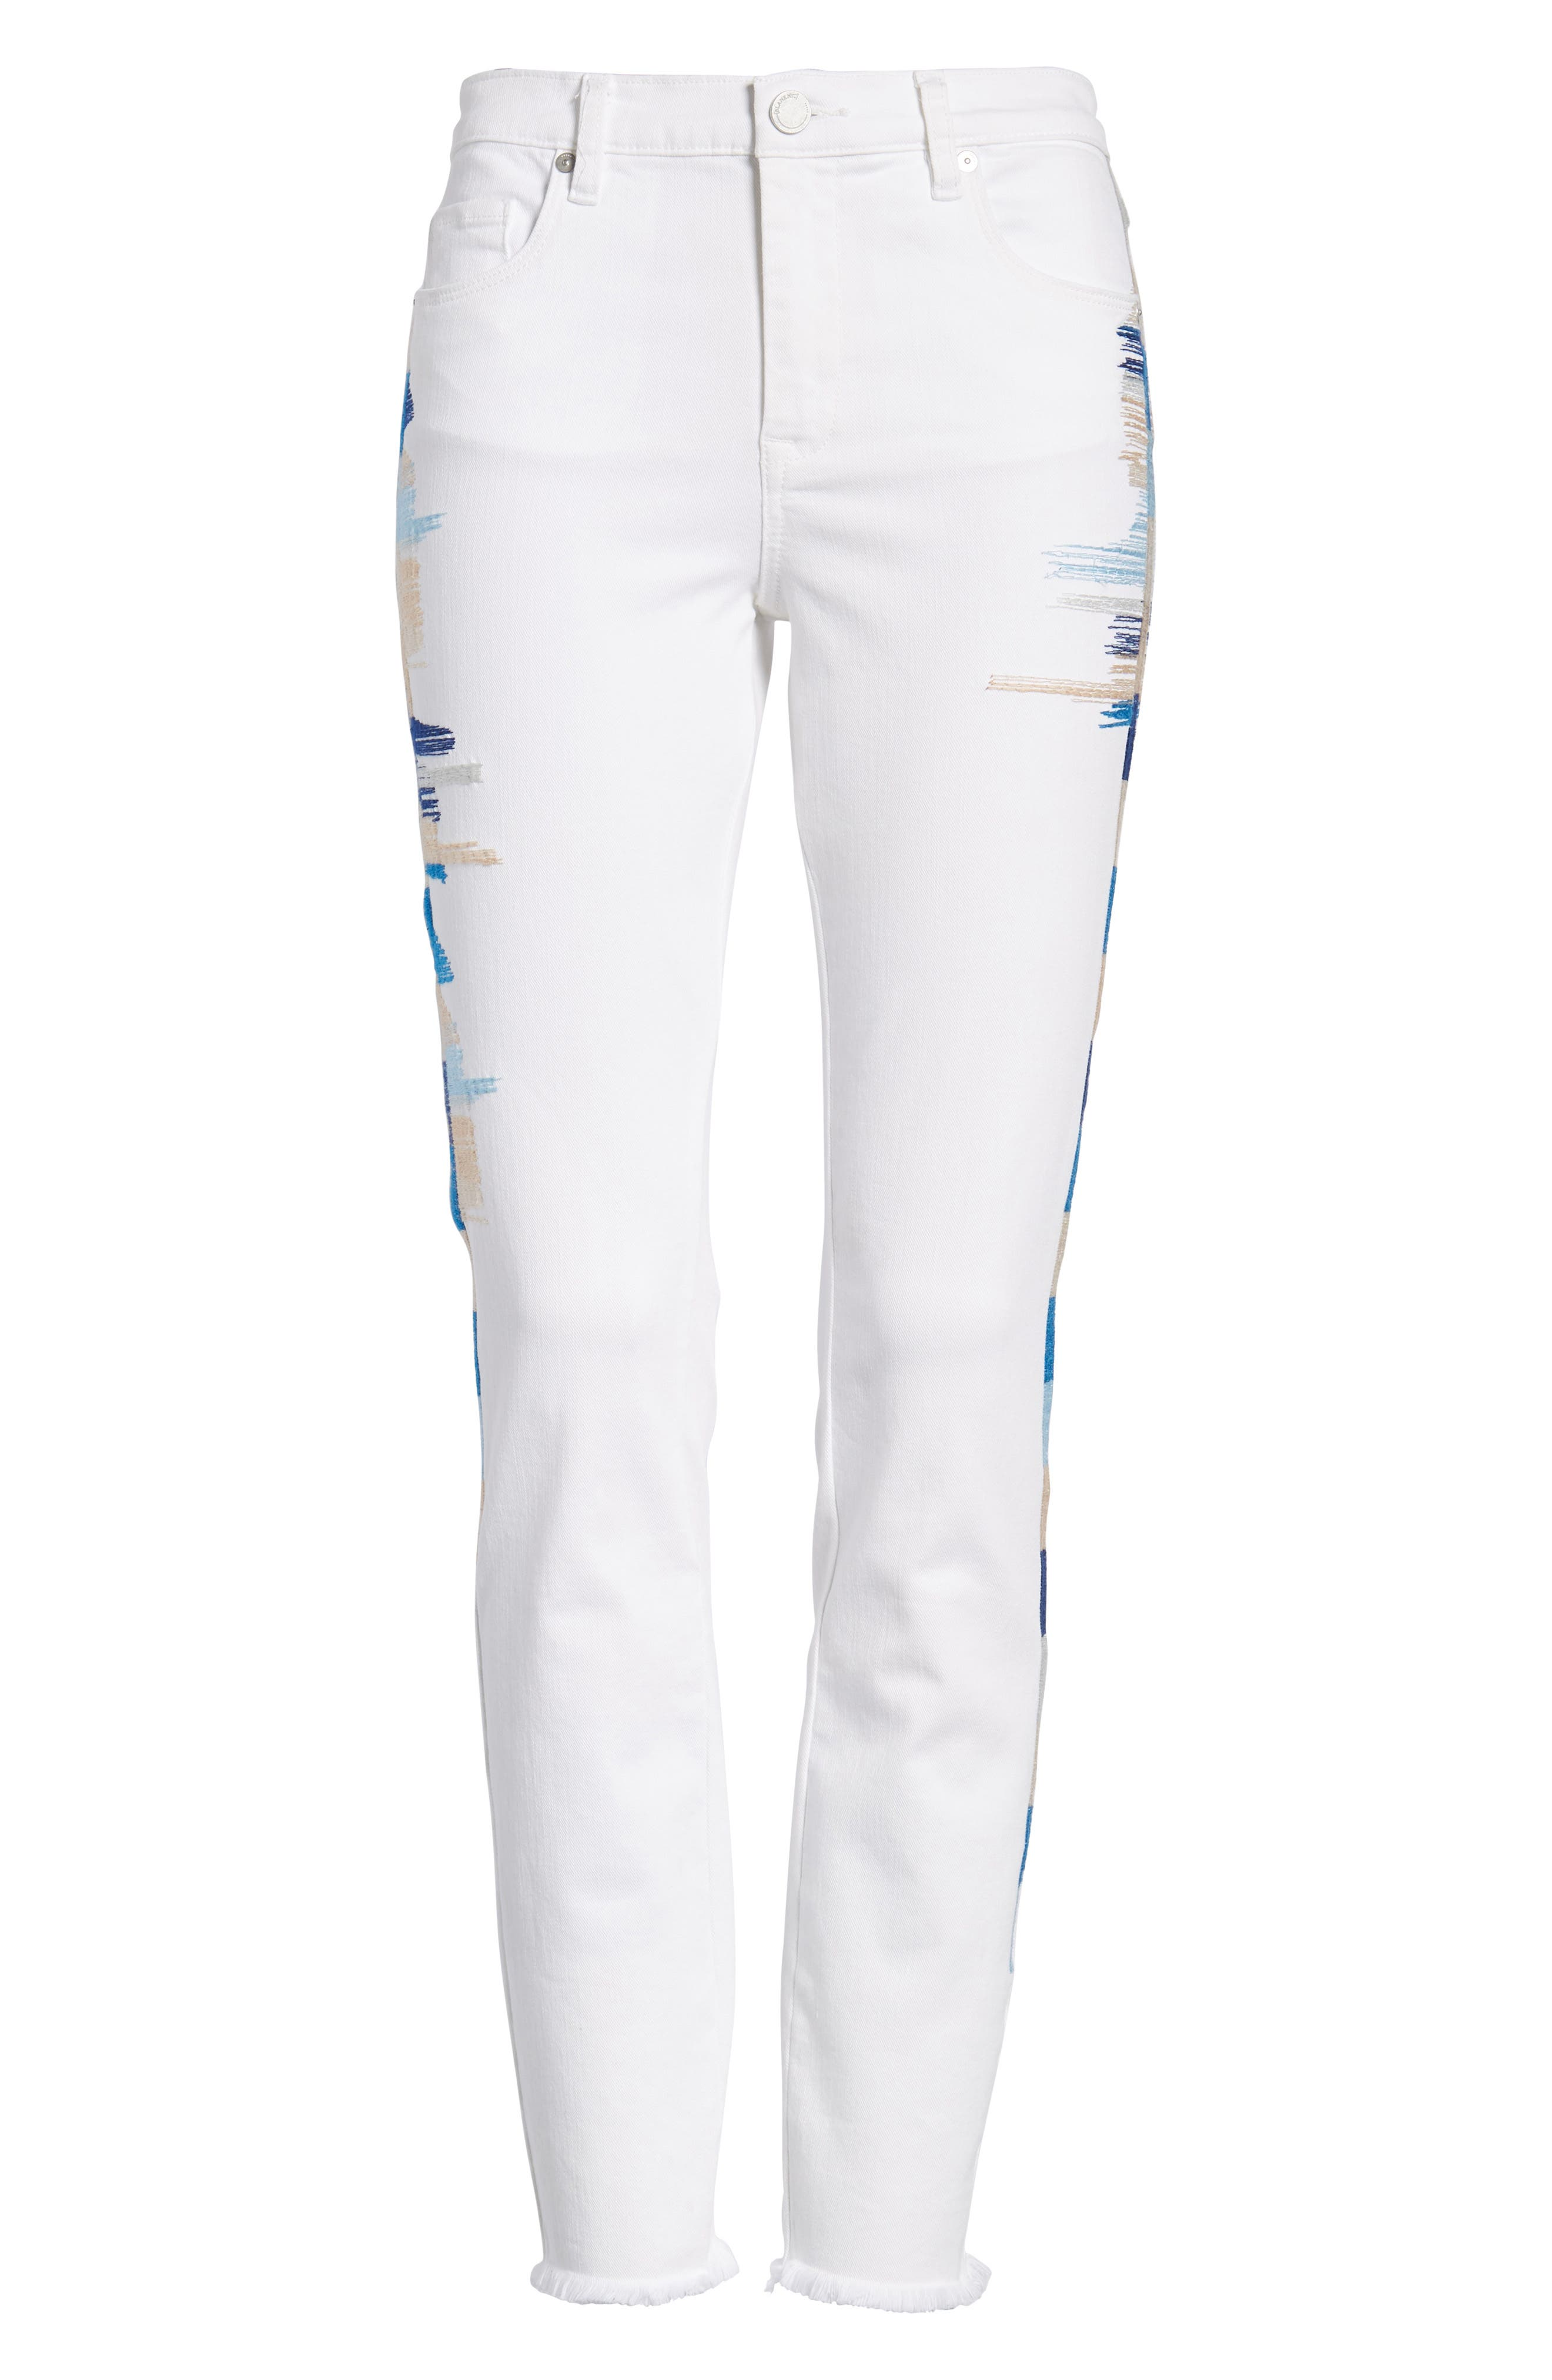 Bond Embroidered Skinny Jeans,                             Alternate thumbnail 7, color,                             Best Coast